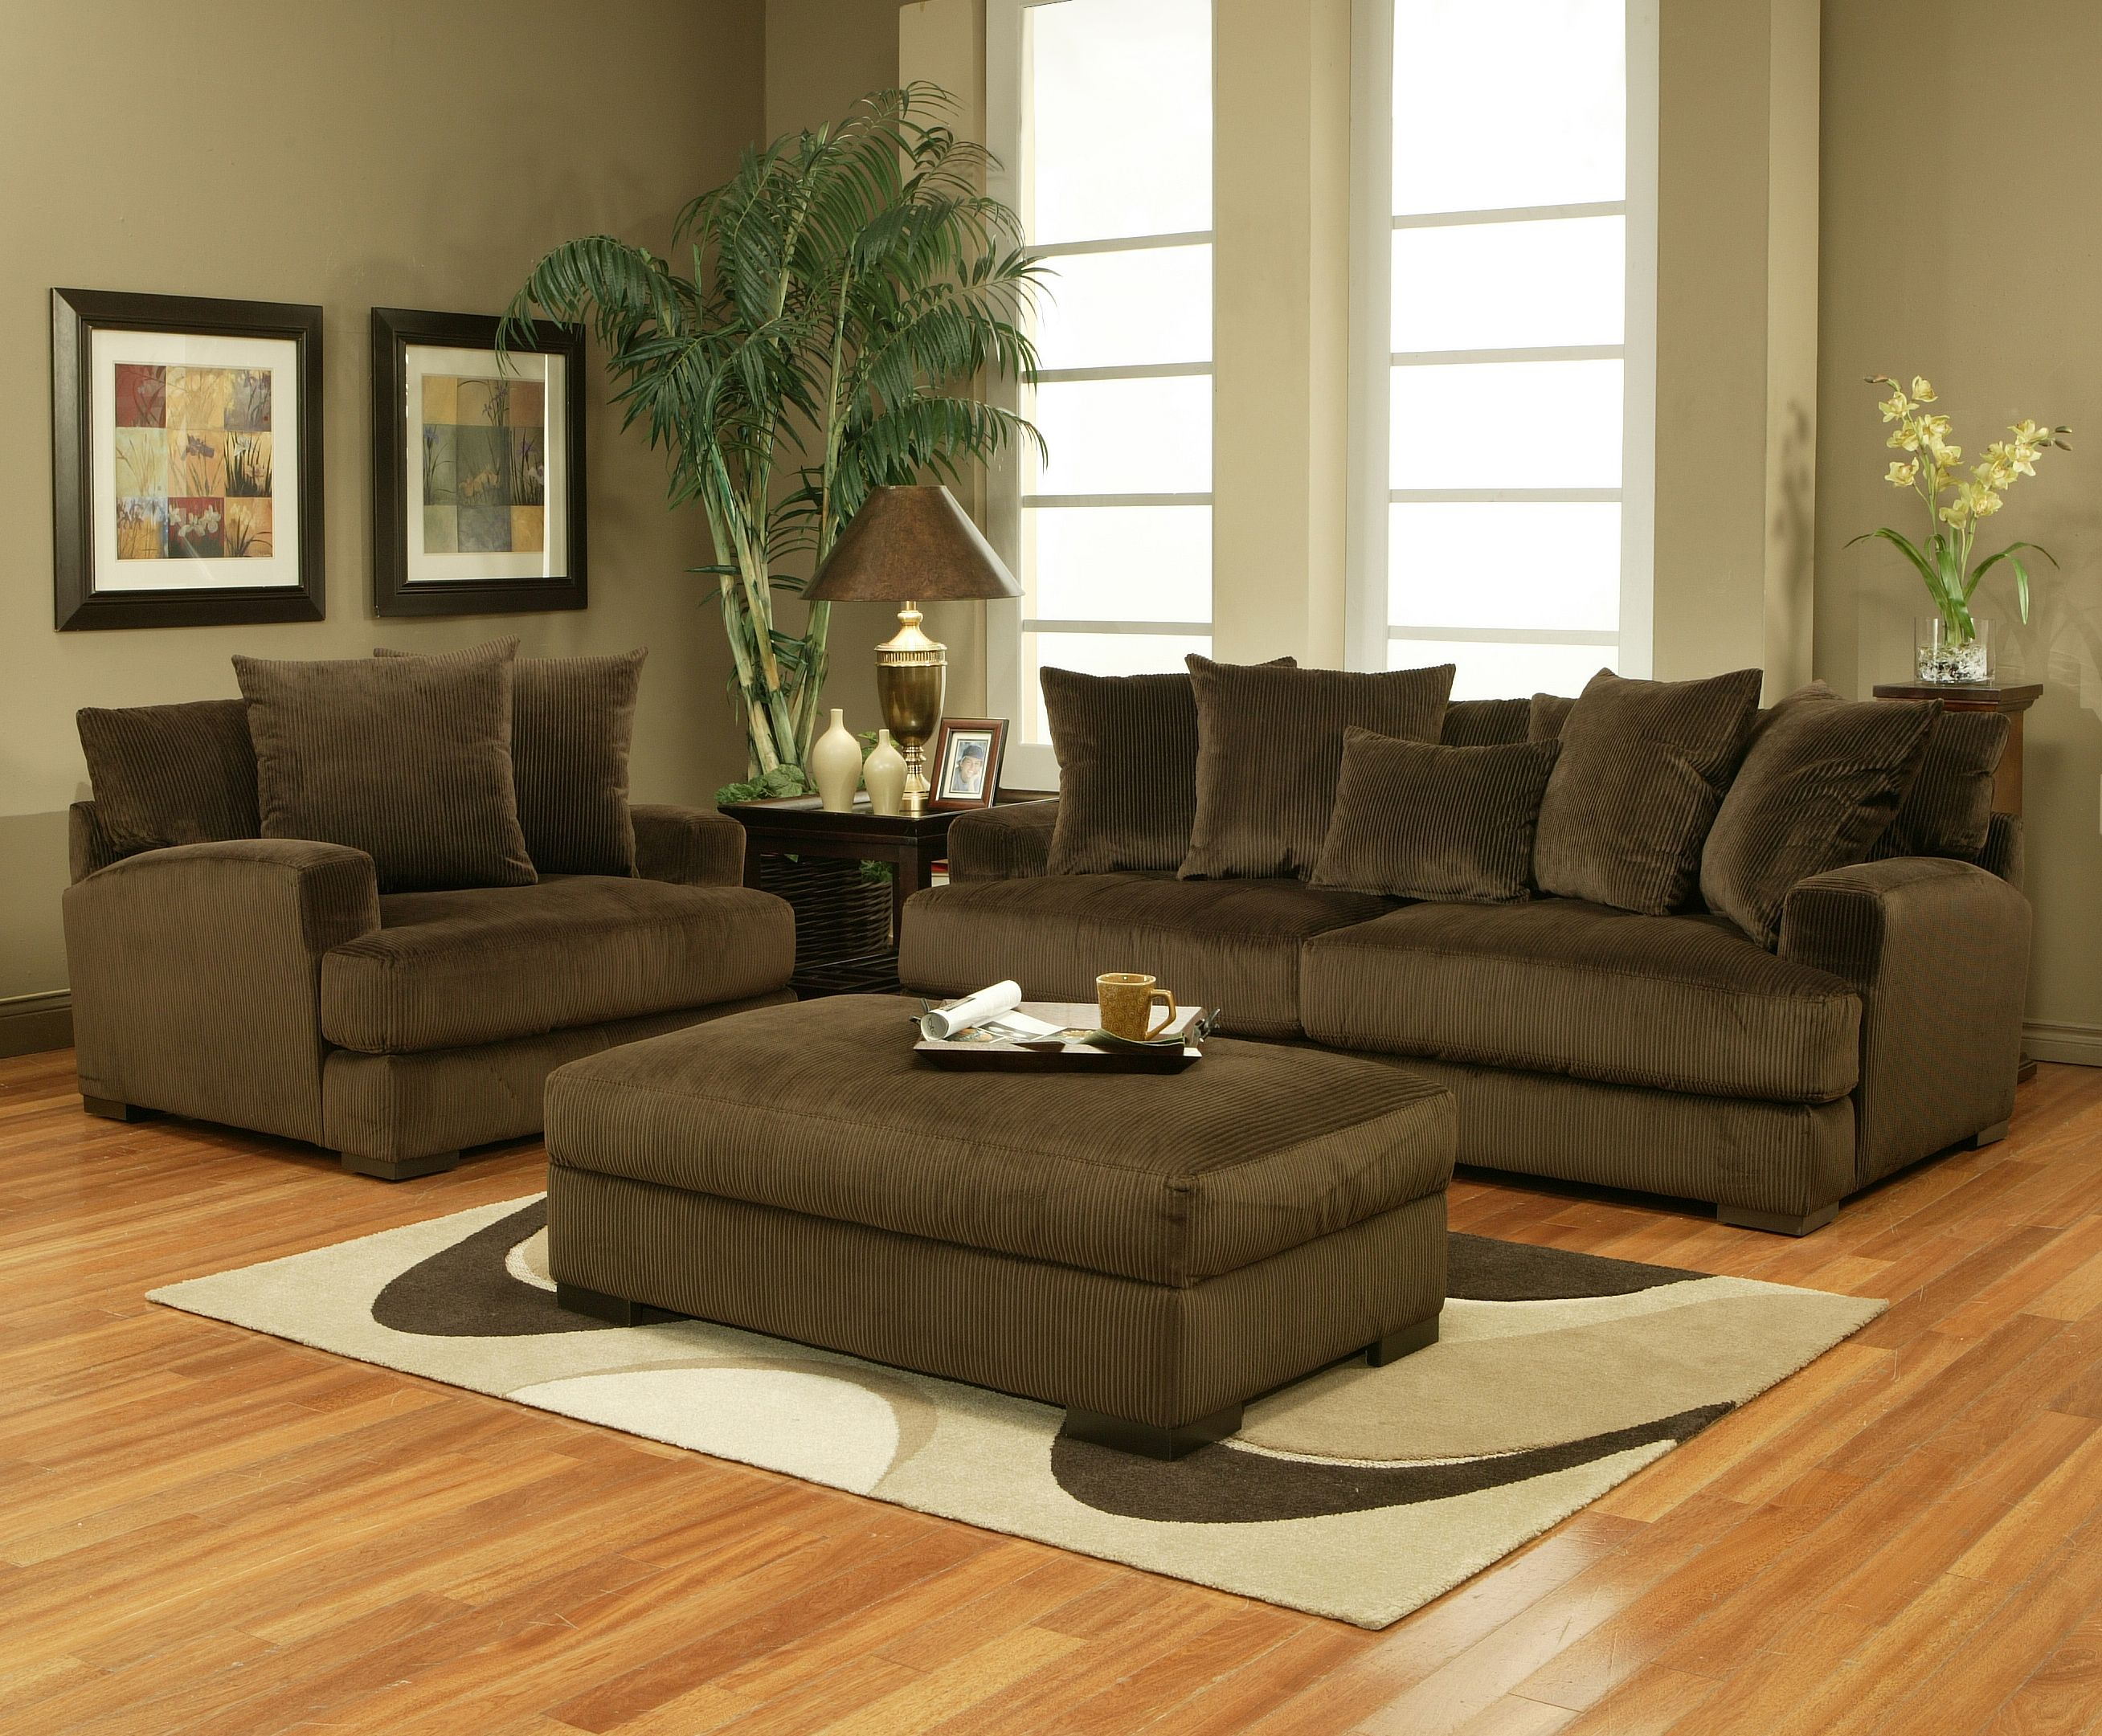 Carlin Sofa loveseat chair & ottoman as well as multiple